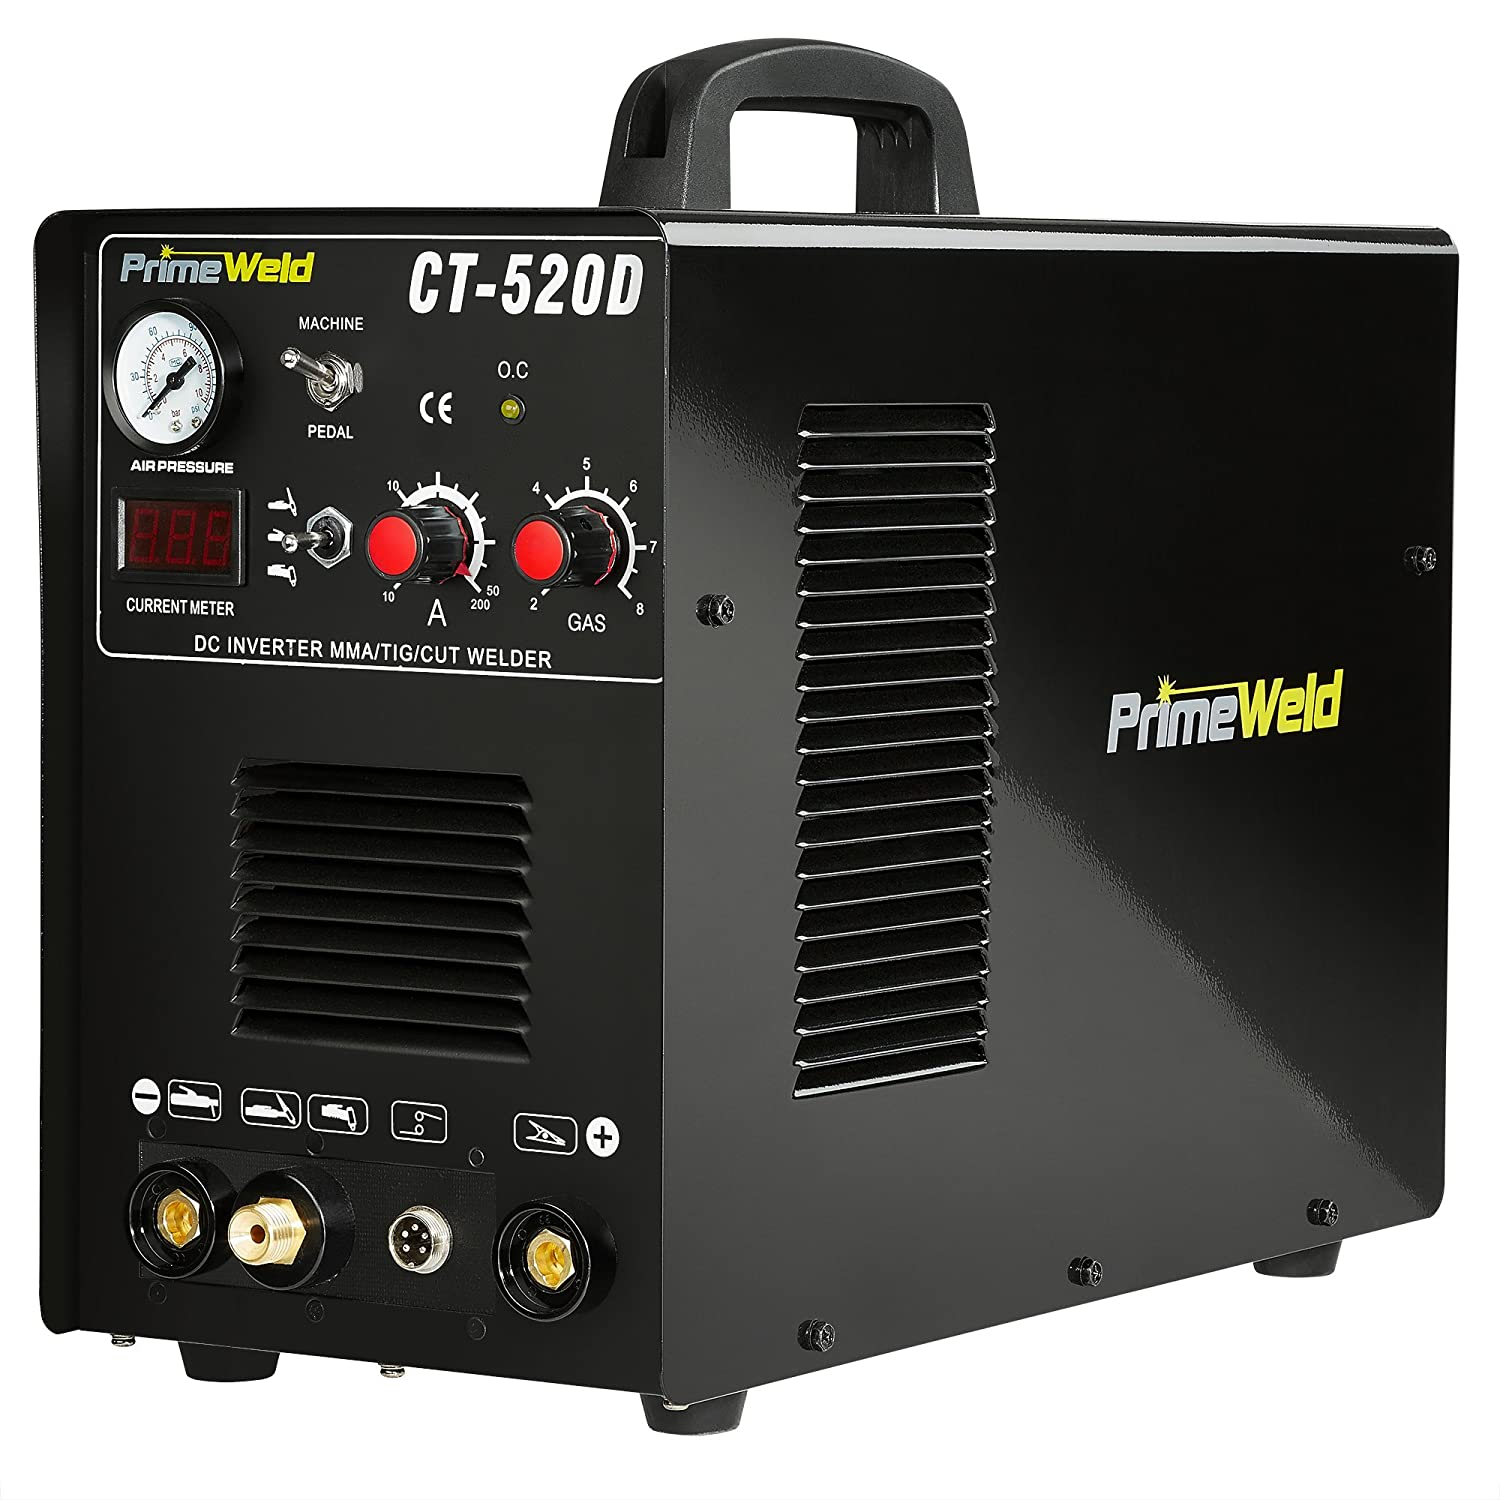 Top 10 Best Chinese Plasma Cutter Reviews in 2020 4